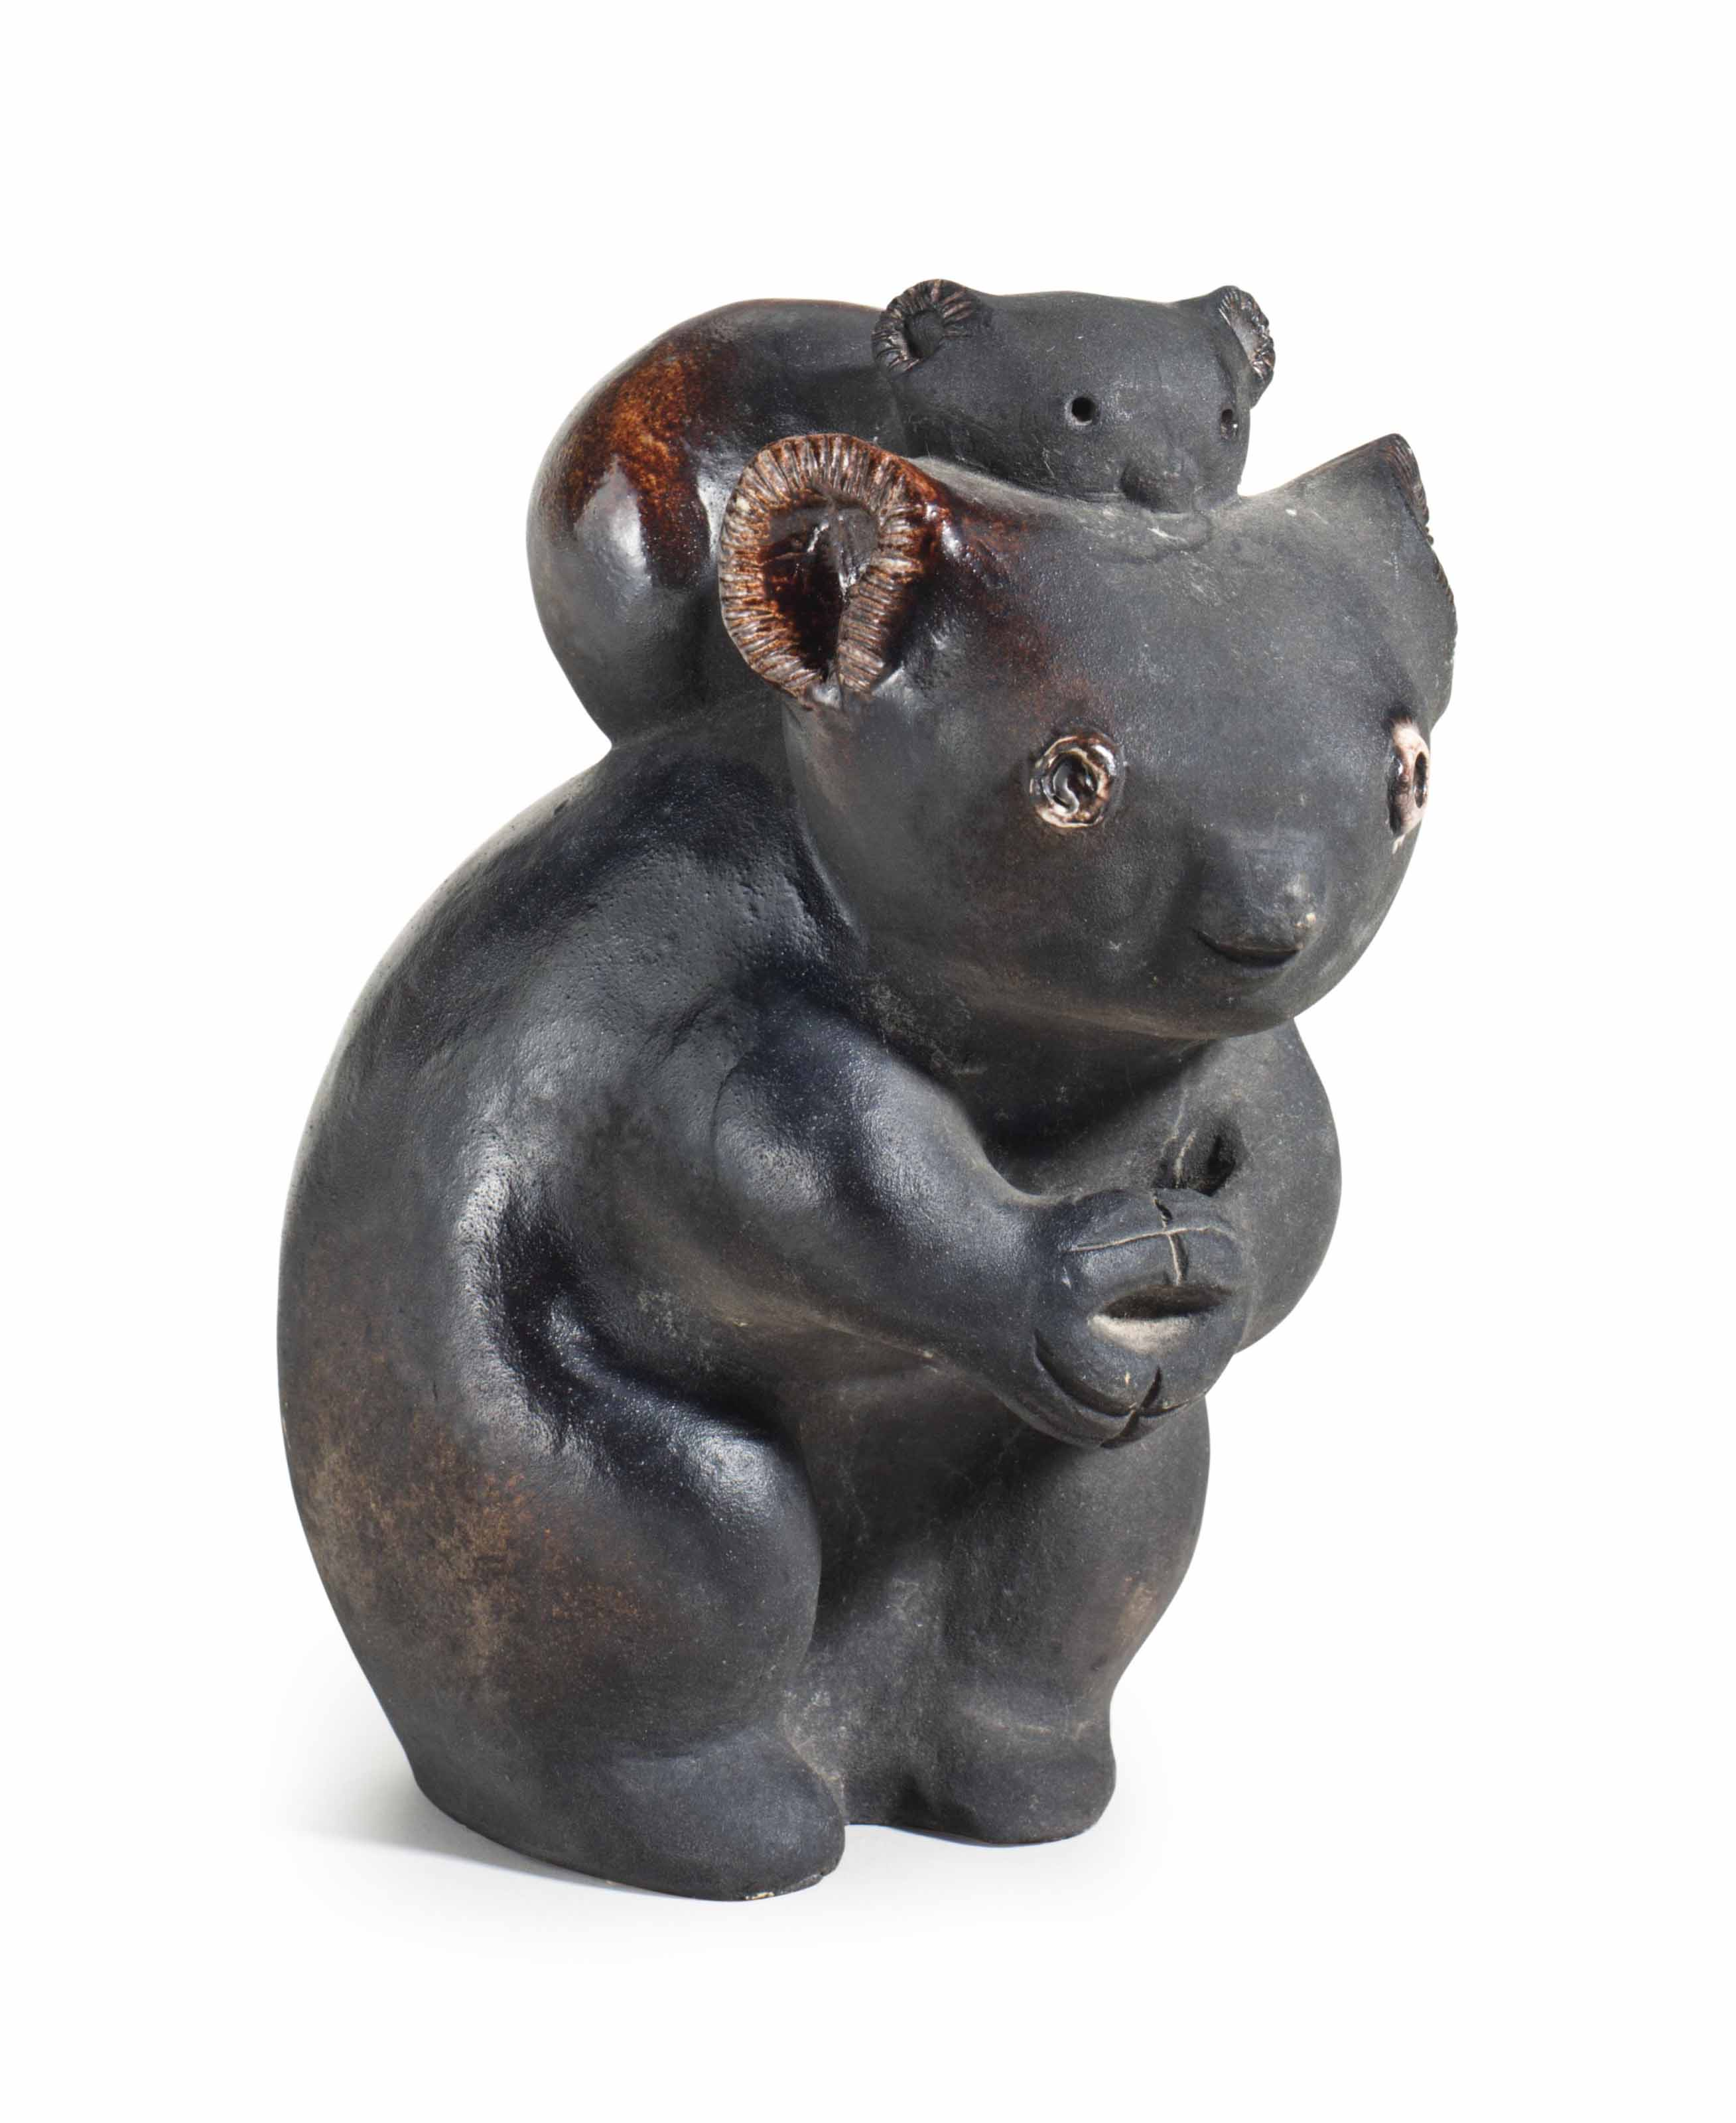 A FRENCH POTTERY FIGURE OF A KOALA AND ITS PUP